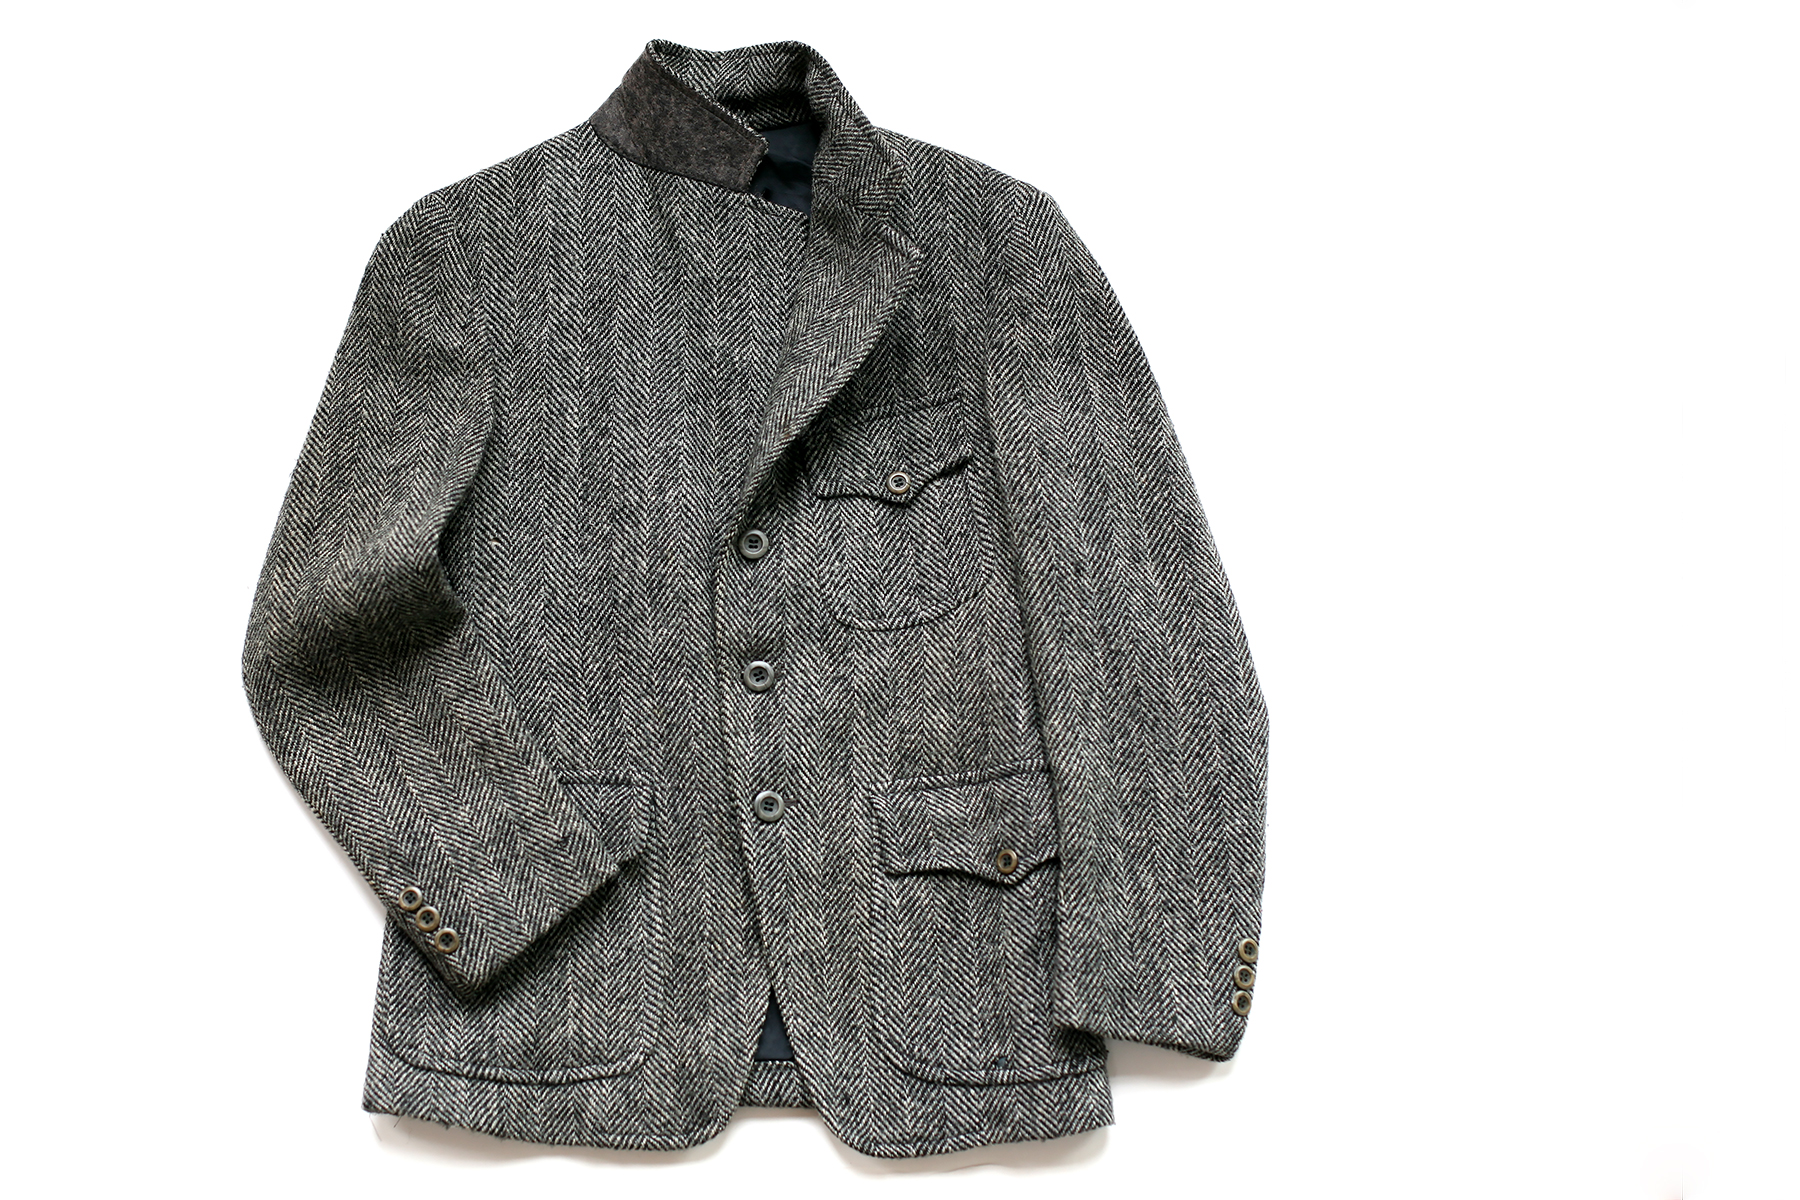 Harris_Tweed_Jacket.jpg